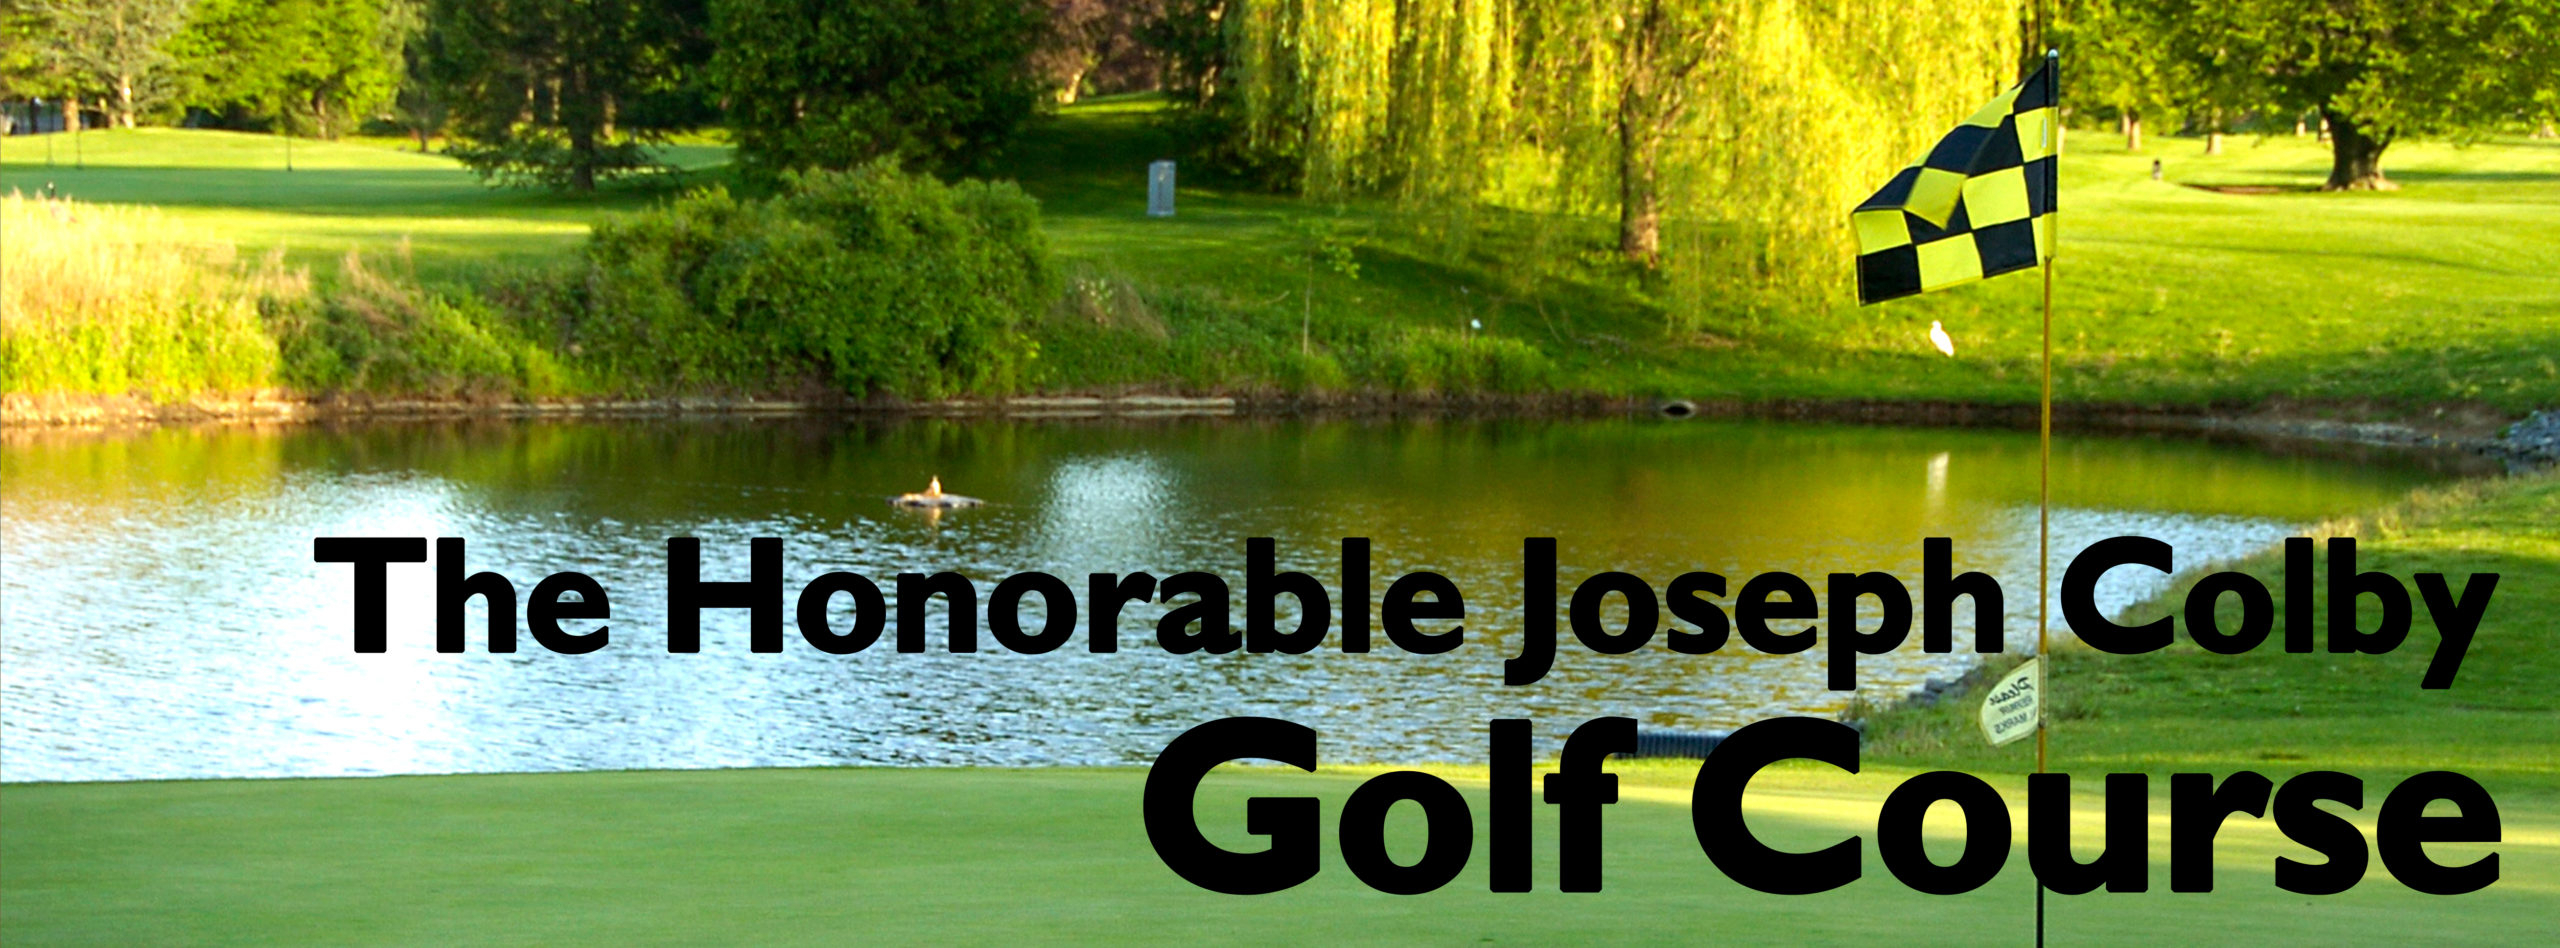 Golf Course Location & Hours - Town Of Oyster Bay within Town Of Oysterbay Town Callendar